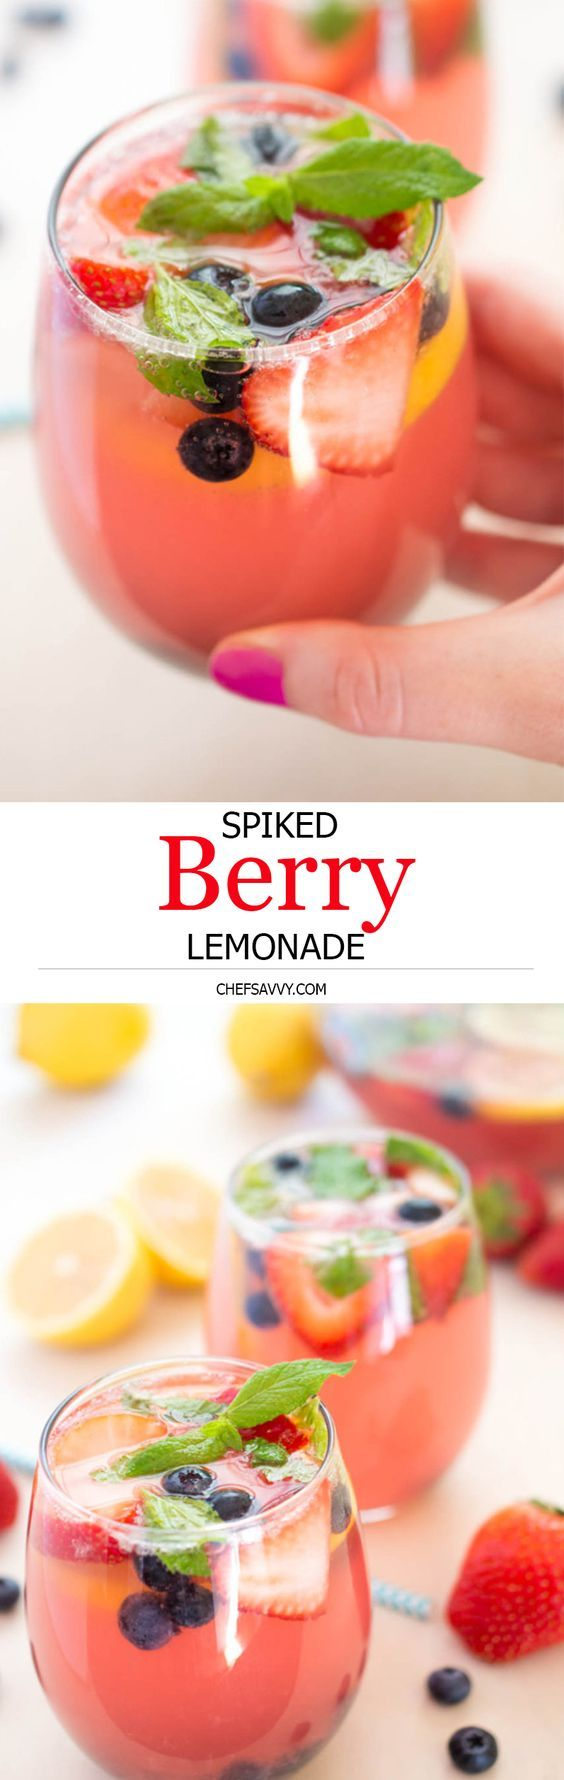 Colorful Spiked Berry Lemonade made with fresh strawberries, blueberries and mint. Vodka and triple sec are added for a delicious spin on the traditional lemonade! | chefsavvy.com #recipe #drink #cocktail #drink #lemonade #fruit